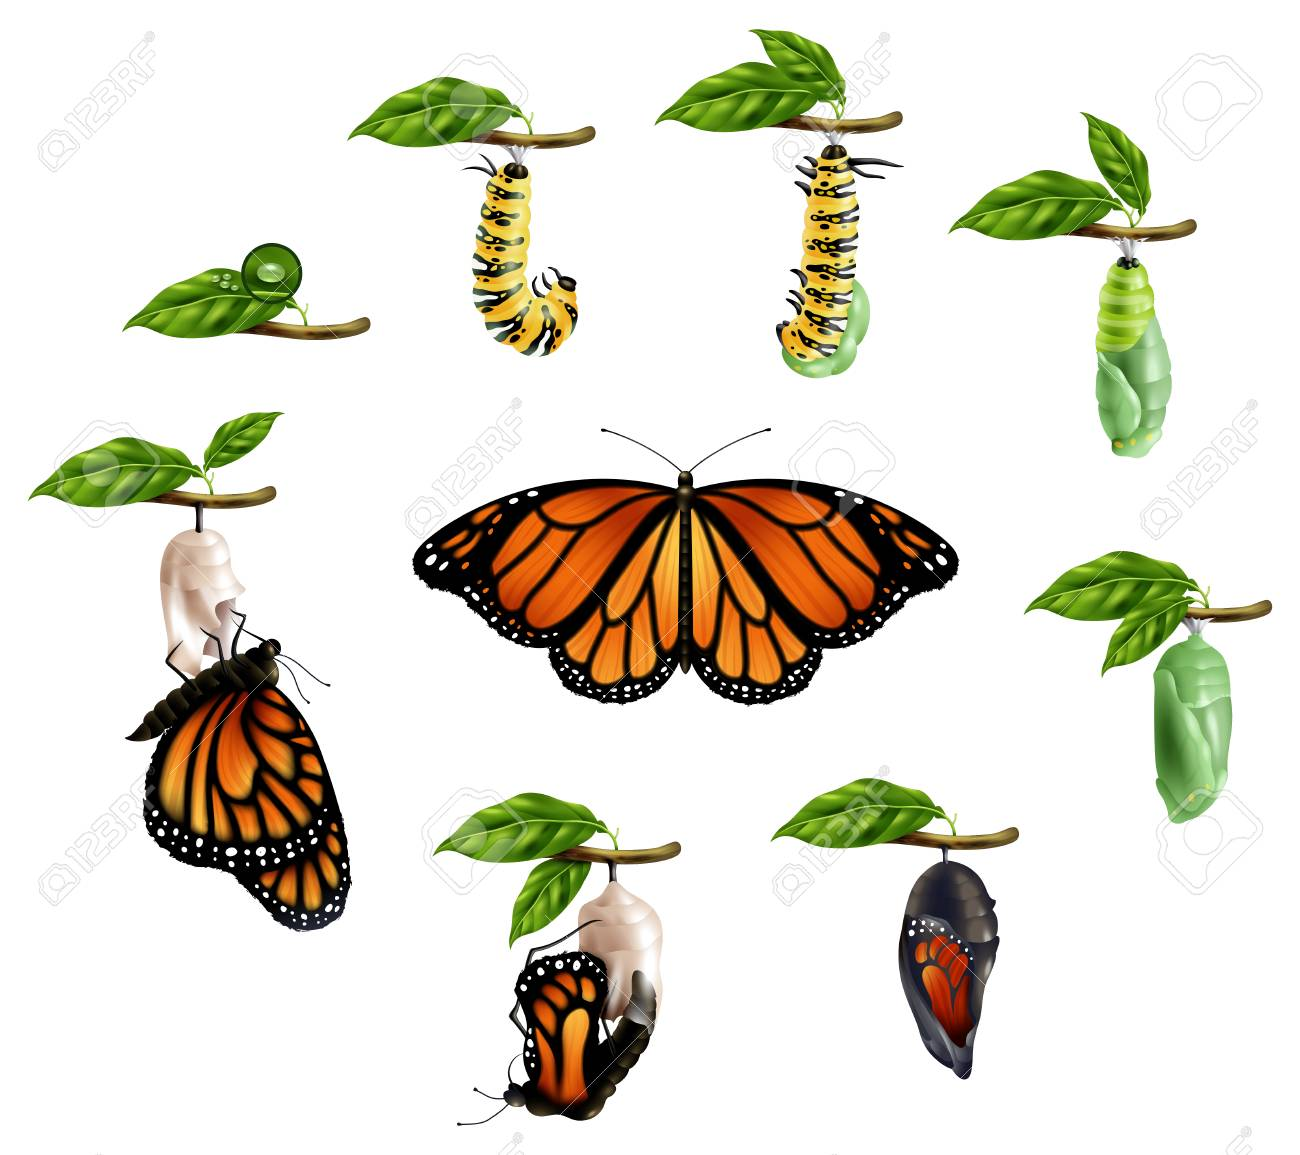 Image result for animal growth caterpillars to butterflies